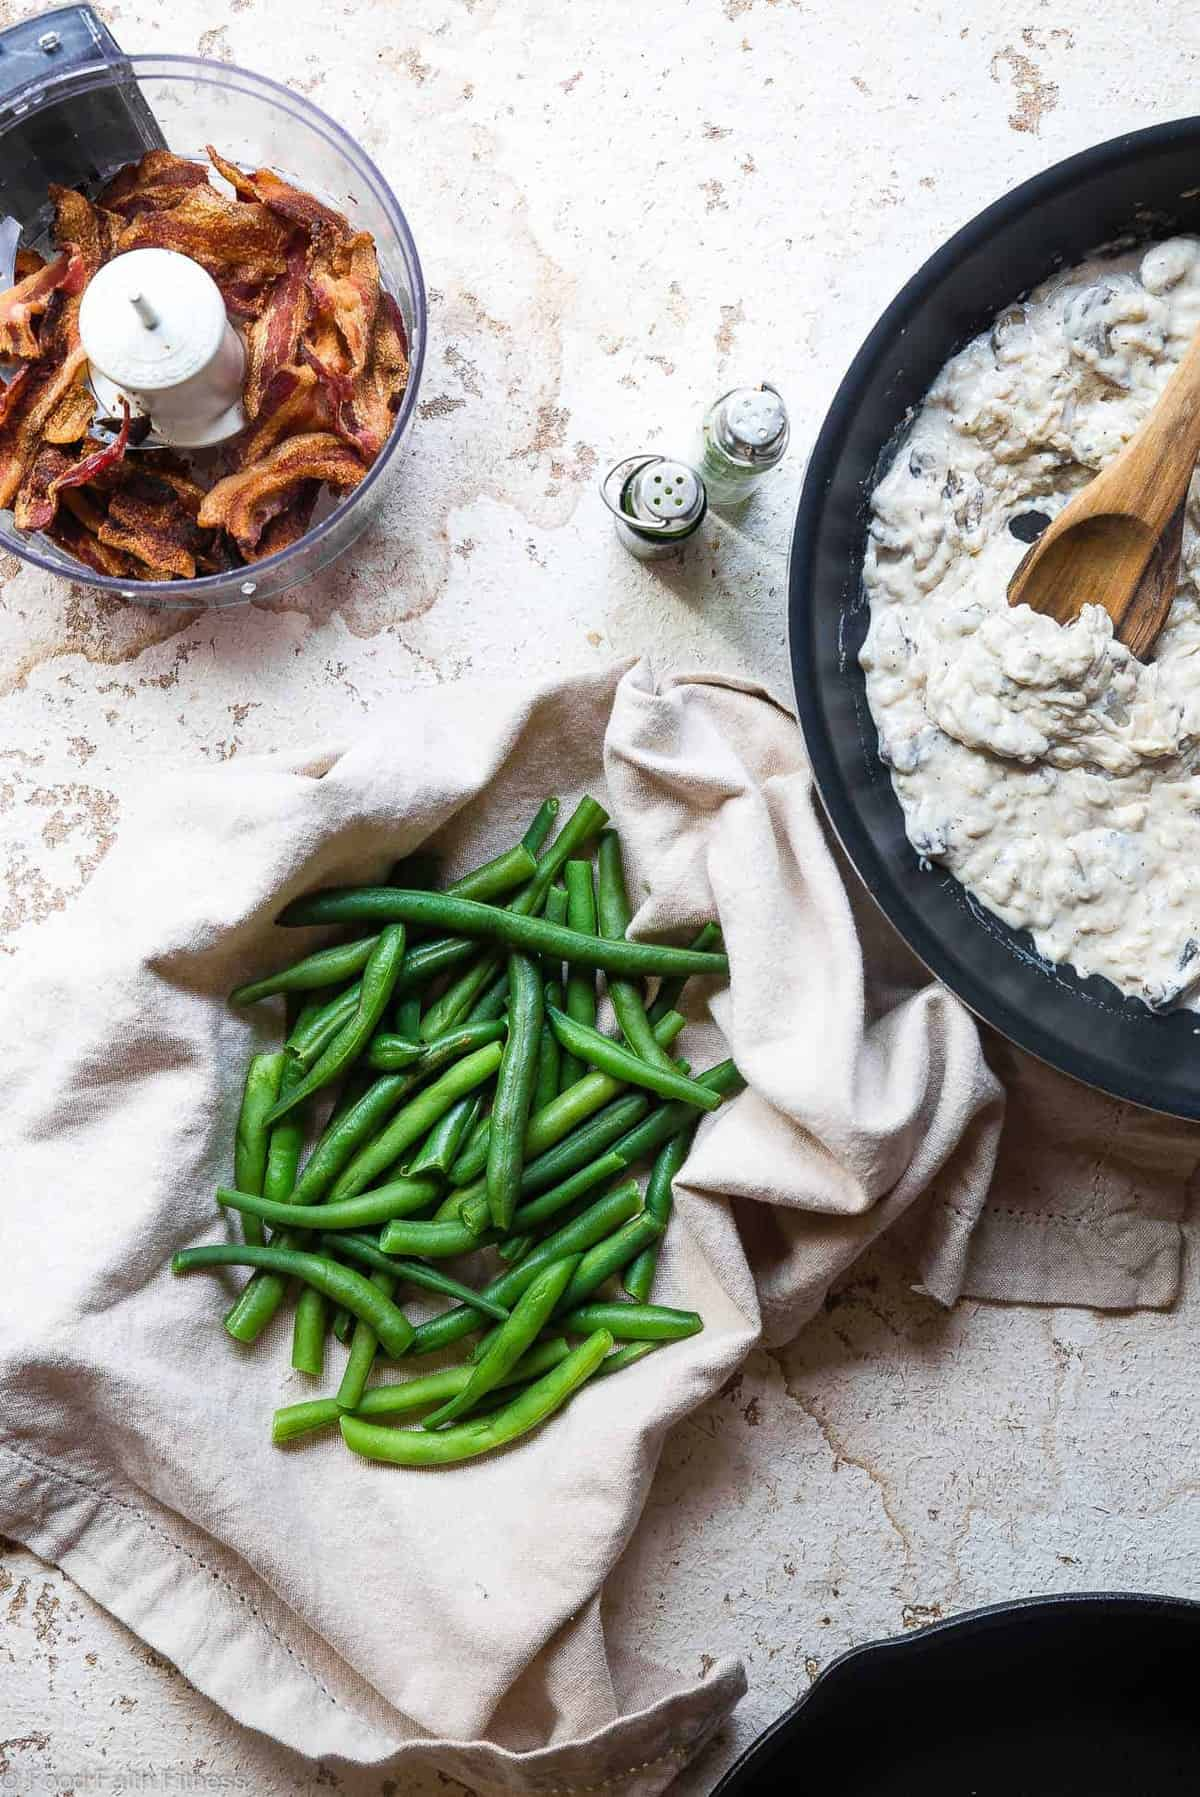 Low Carb Keto Green Bean Casserole - This Low Carb Green Beans Casserole is an EASY, healthy remake of the classic side! No one will know it's better for you! Dairy free option included! | #Foodfaithfitness | #Glutenfree #Dairyfree #Keto #Lowcarb #Healthy